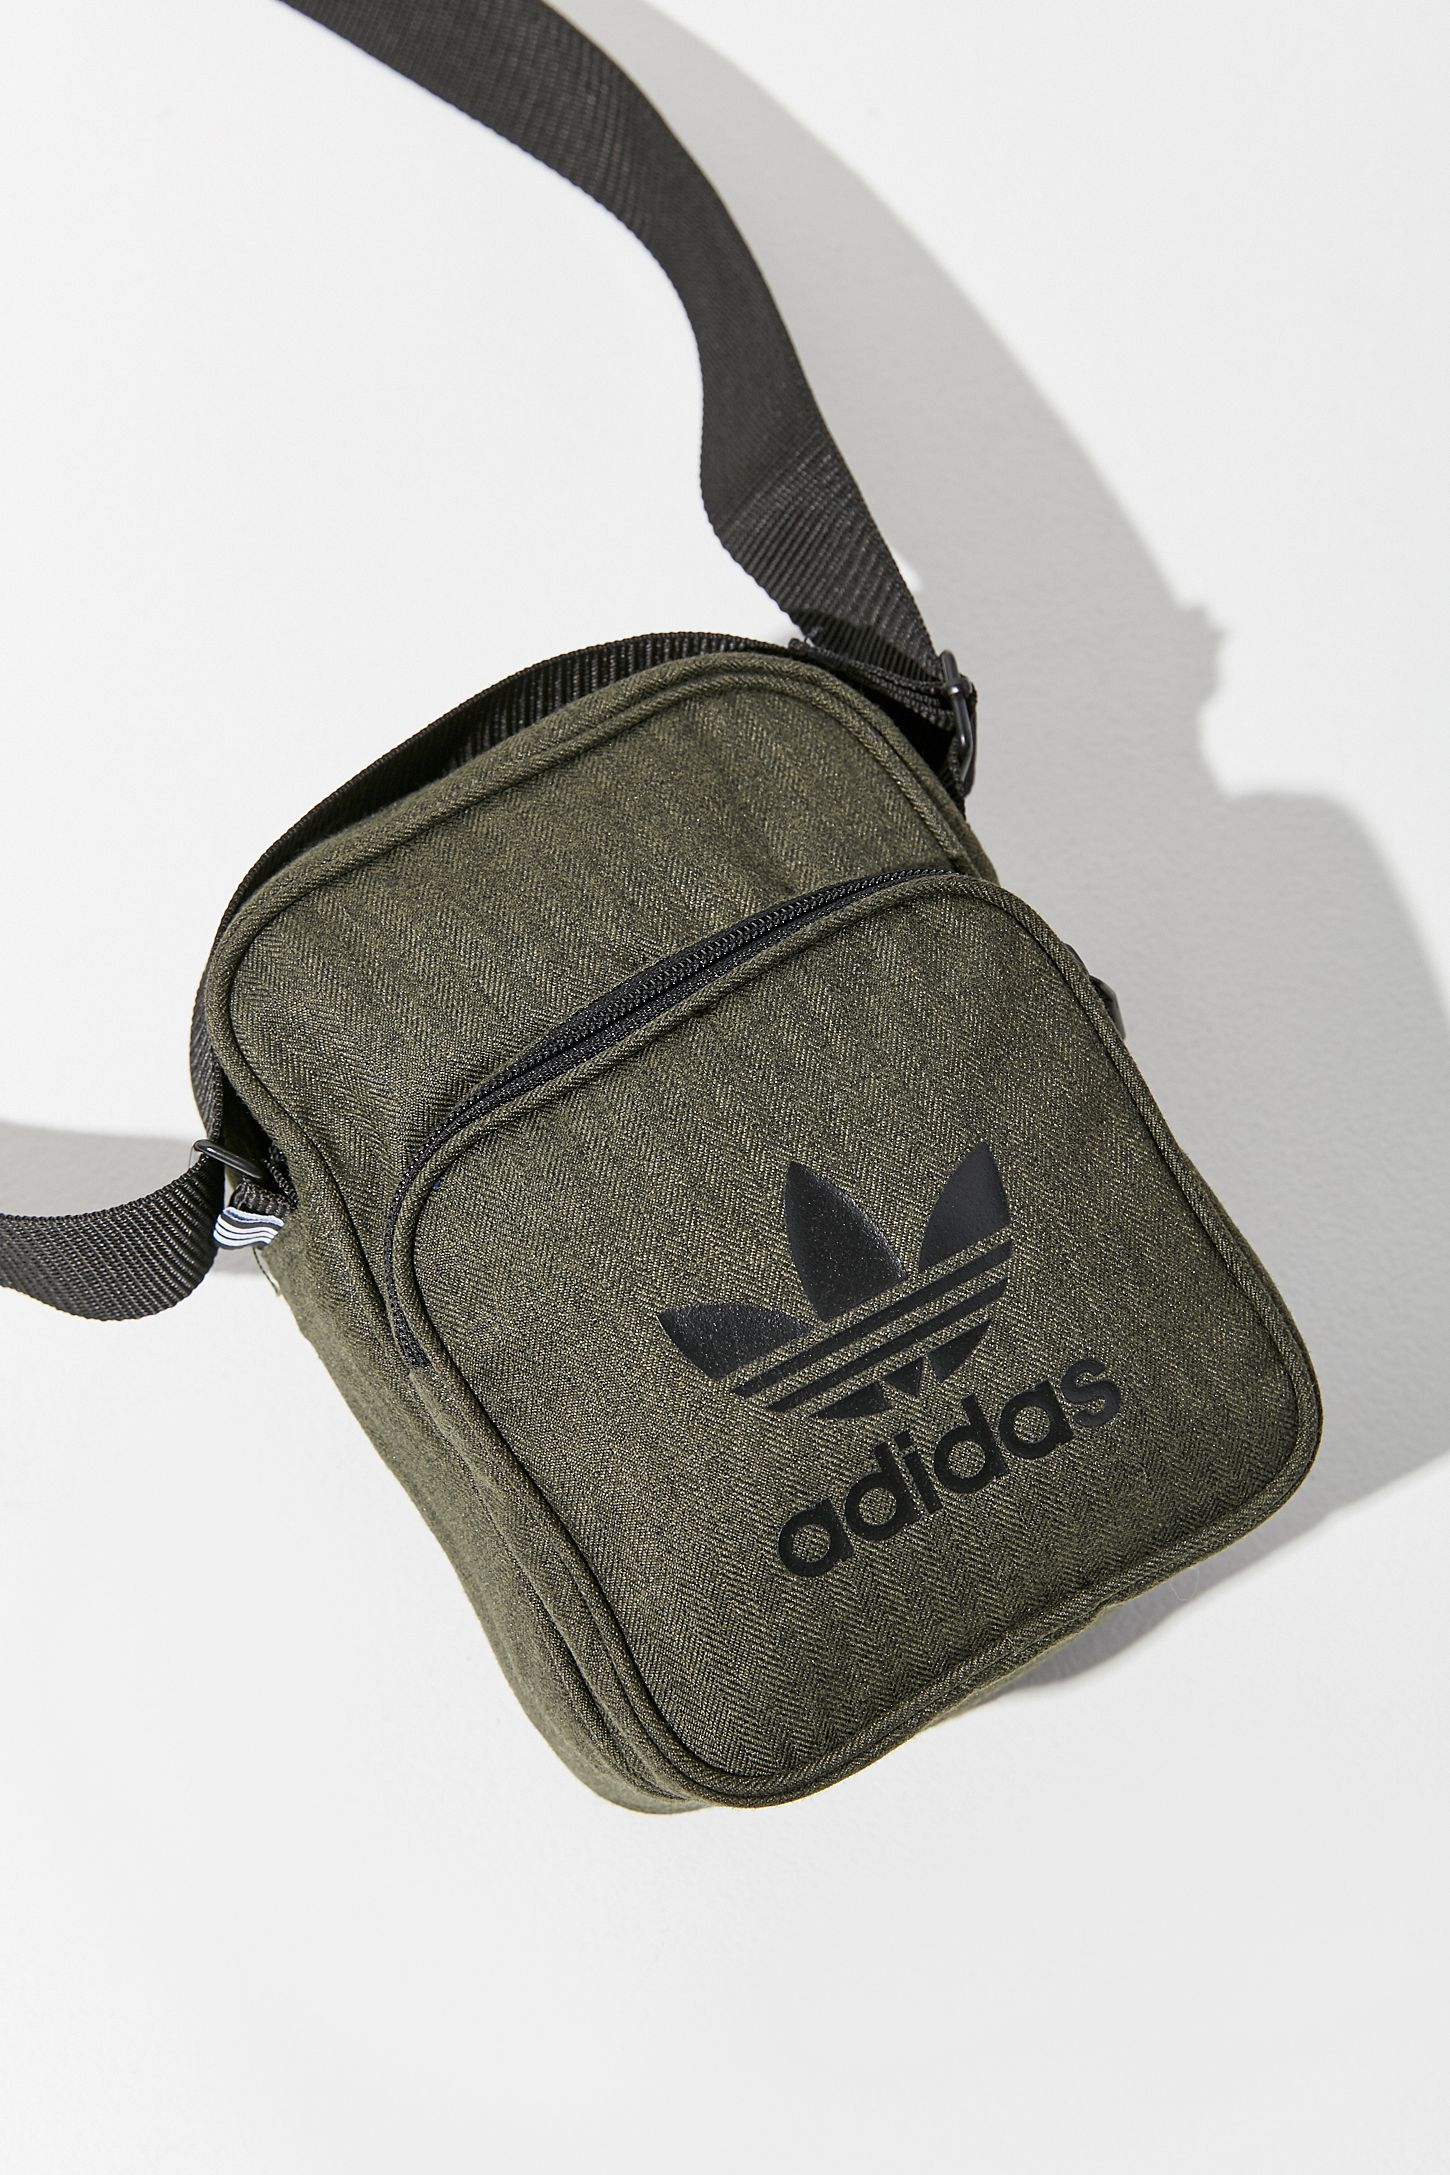 Adidas Mini Bag Casual